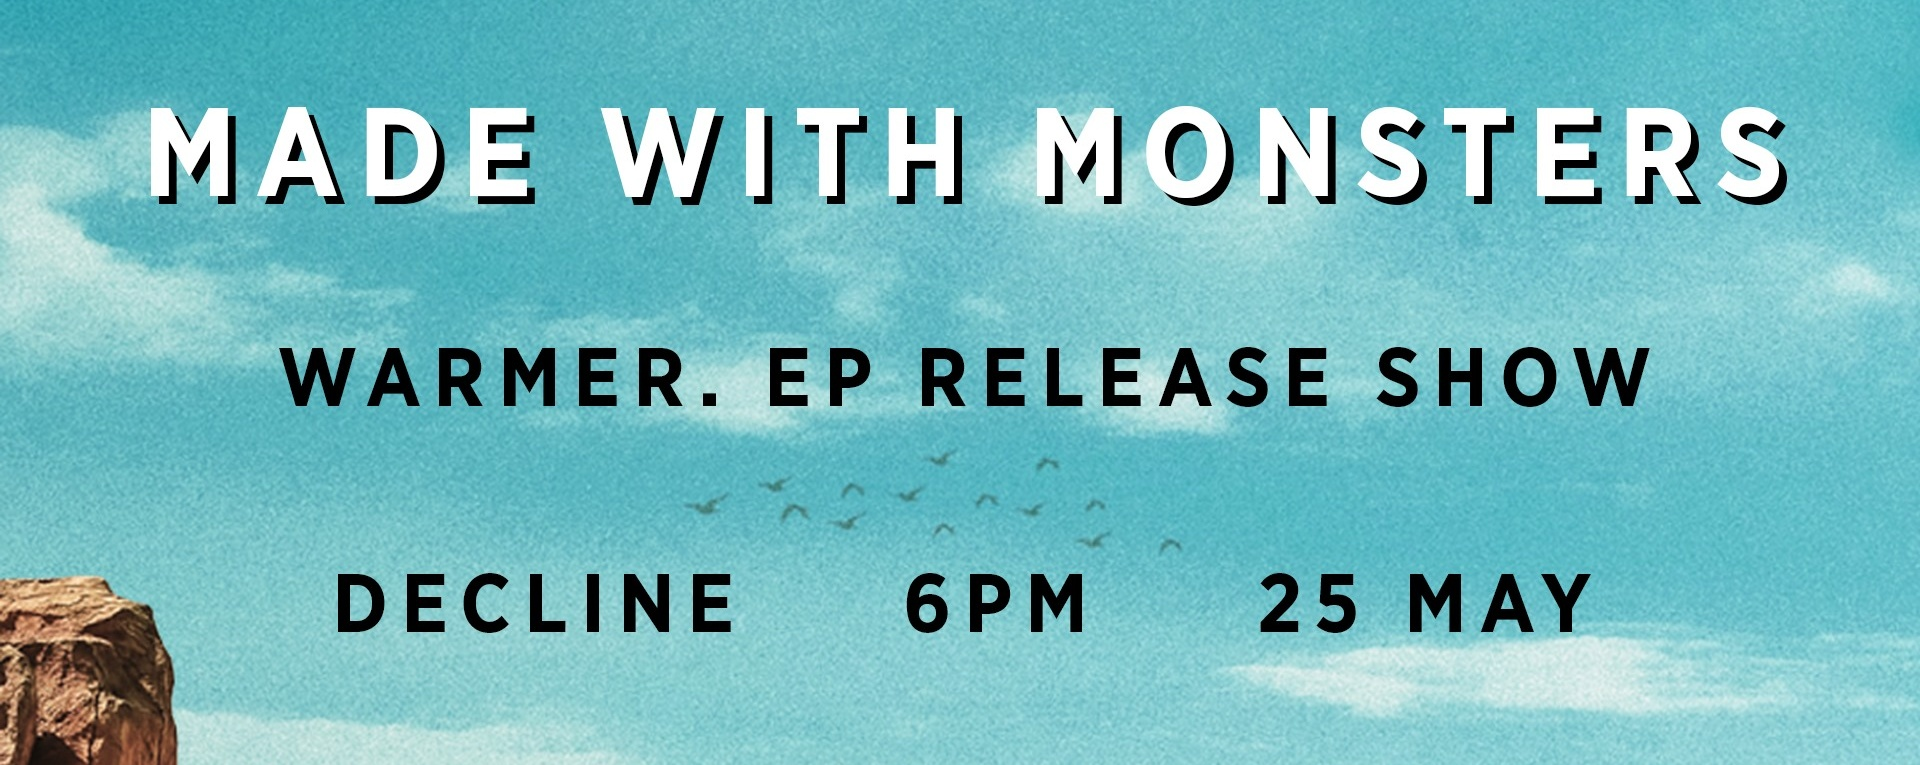 Warmer. EP Release Show by Made with Monsters